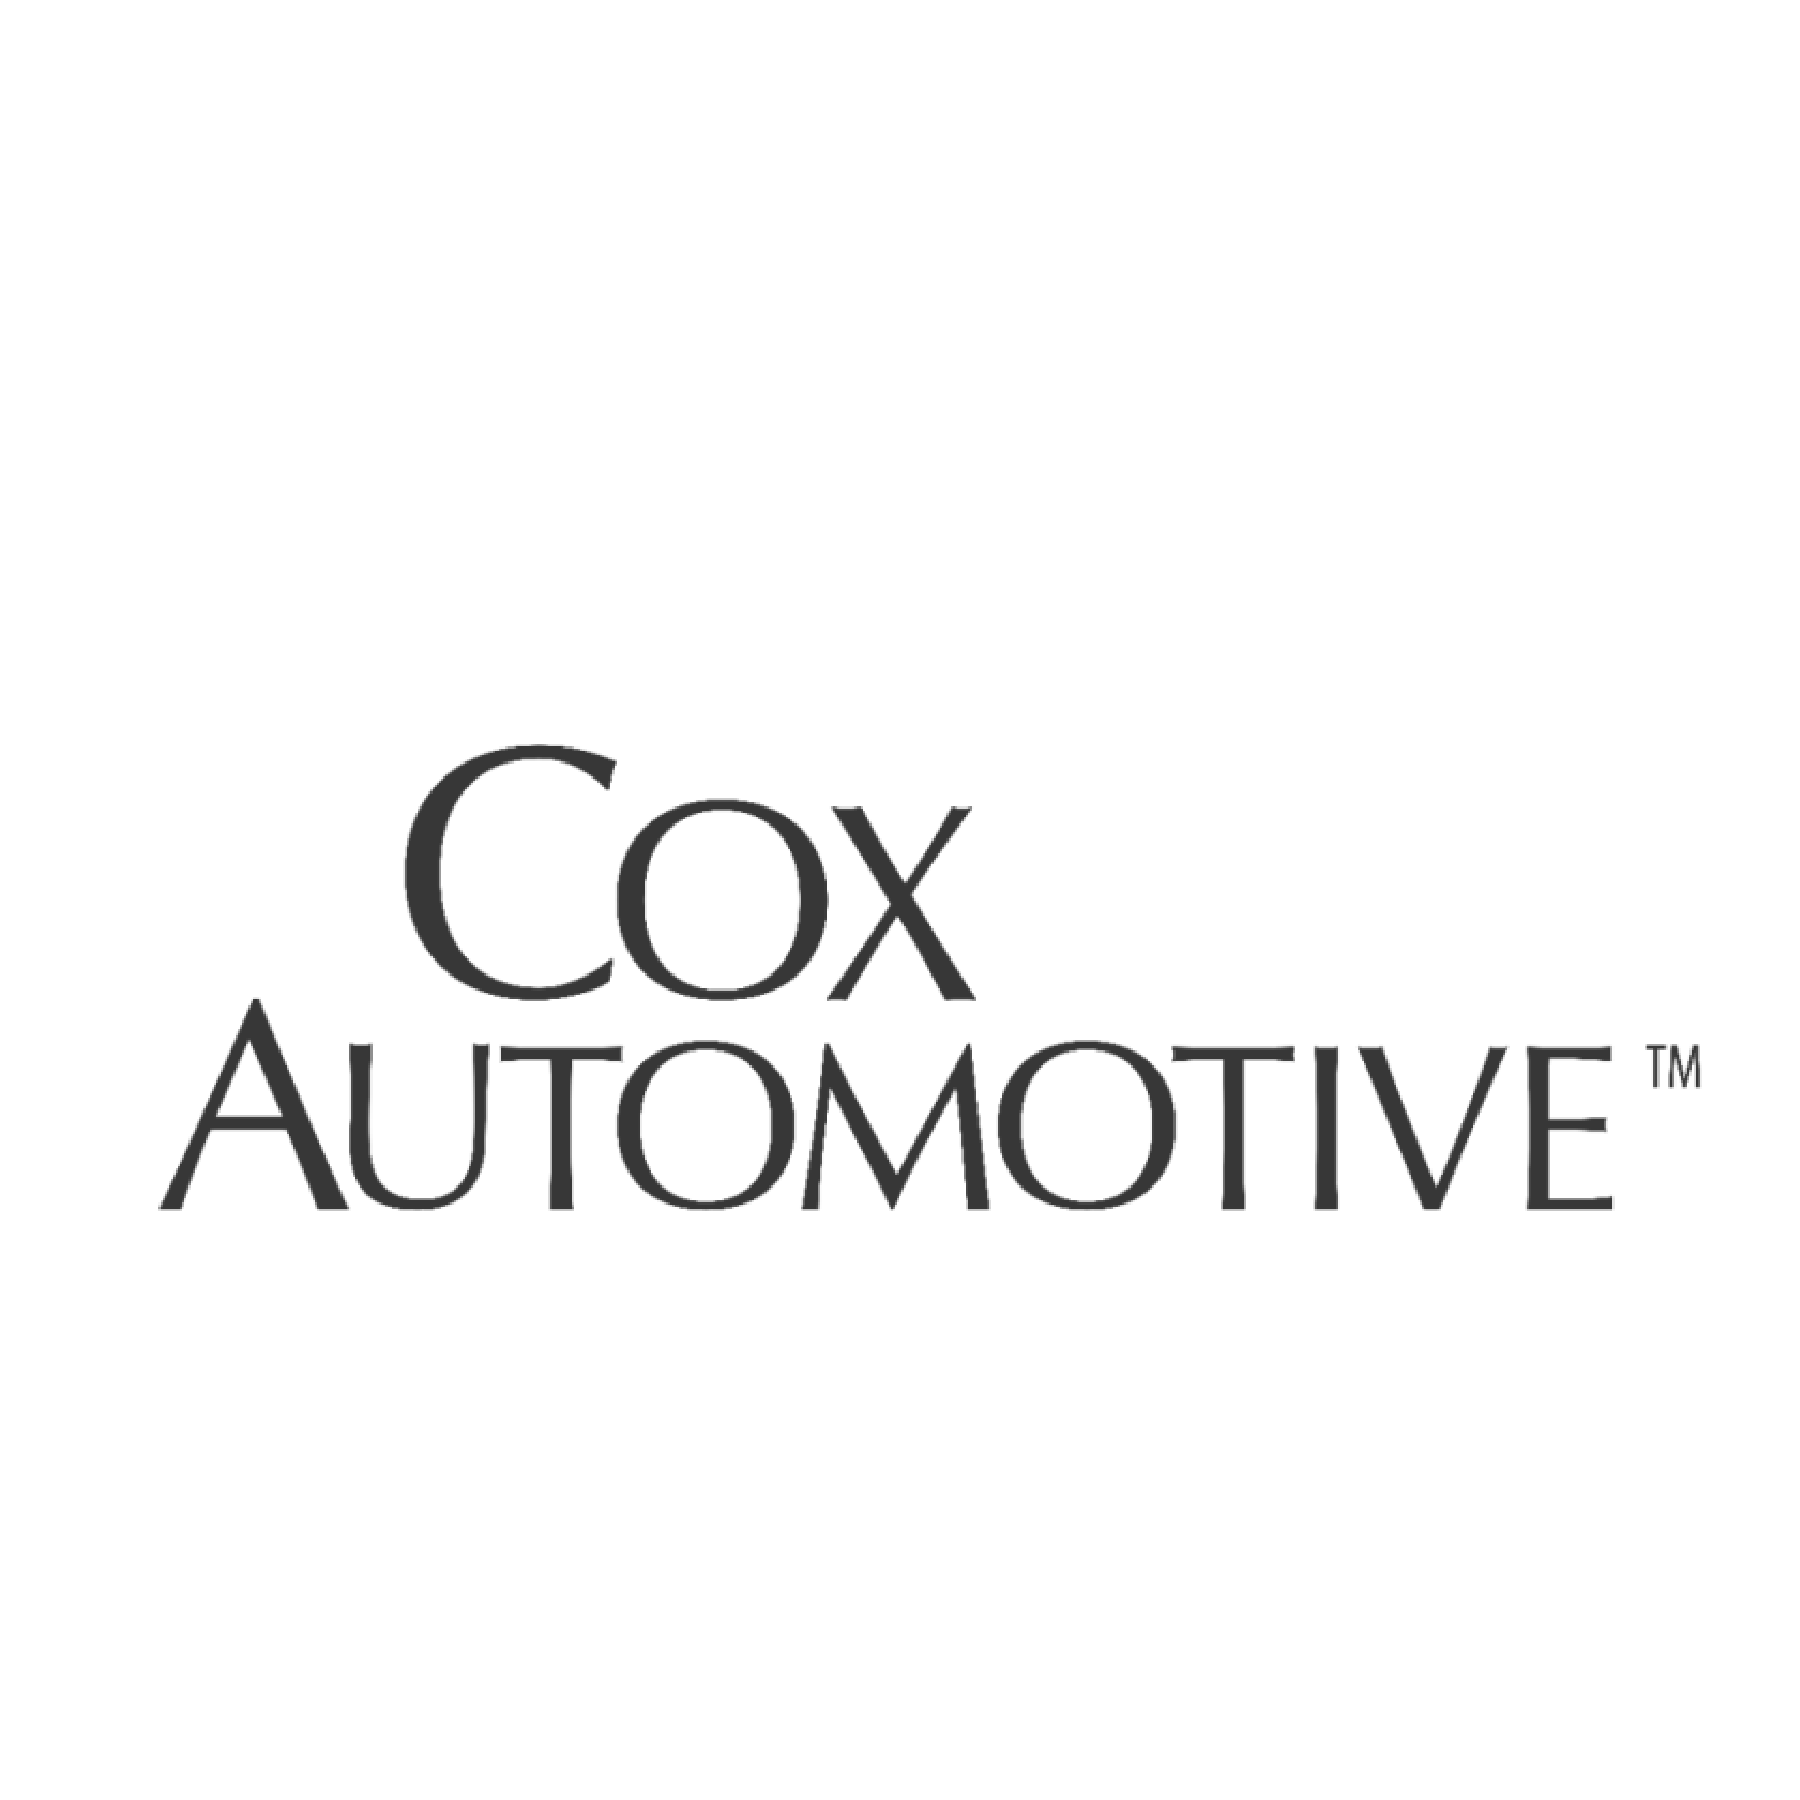 Cox Automotive Rates & Incentives.